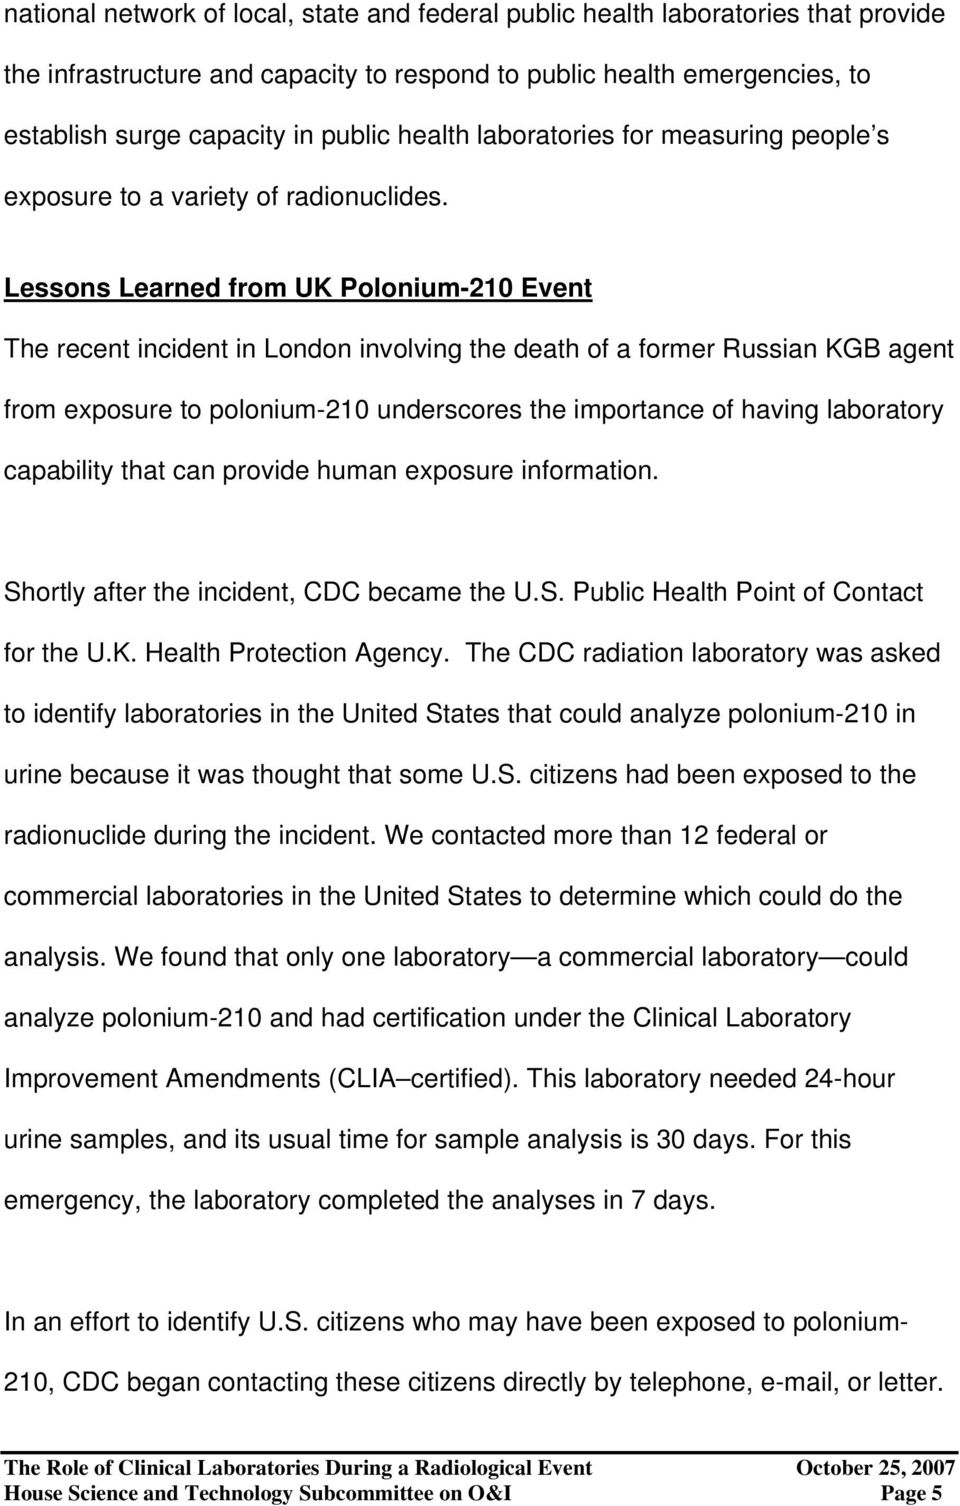 Lessons Learned from UK Polonium-210 Event The recent incident in London involving the death of a former Russian KGB agent from exposure to polonium-210 underscores the importance of having